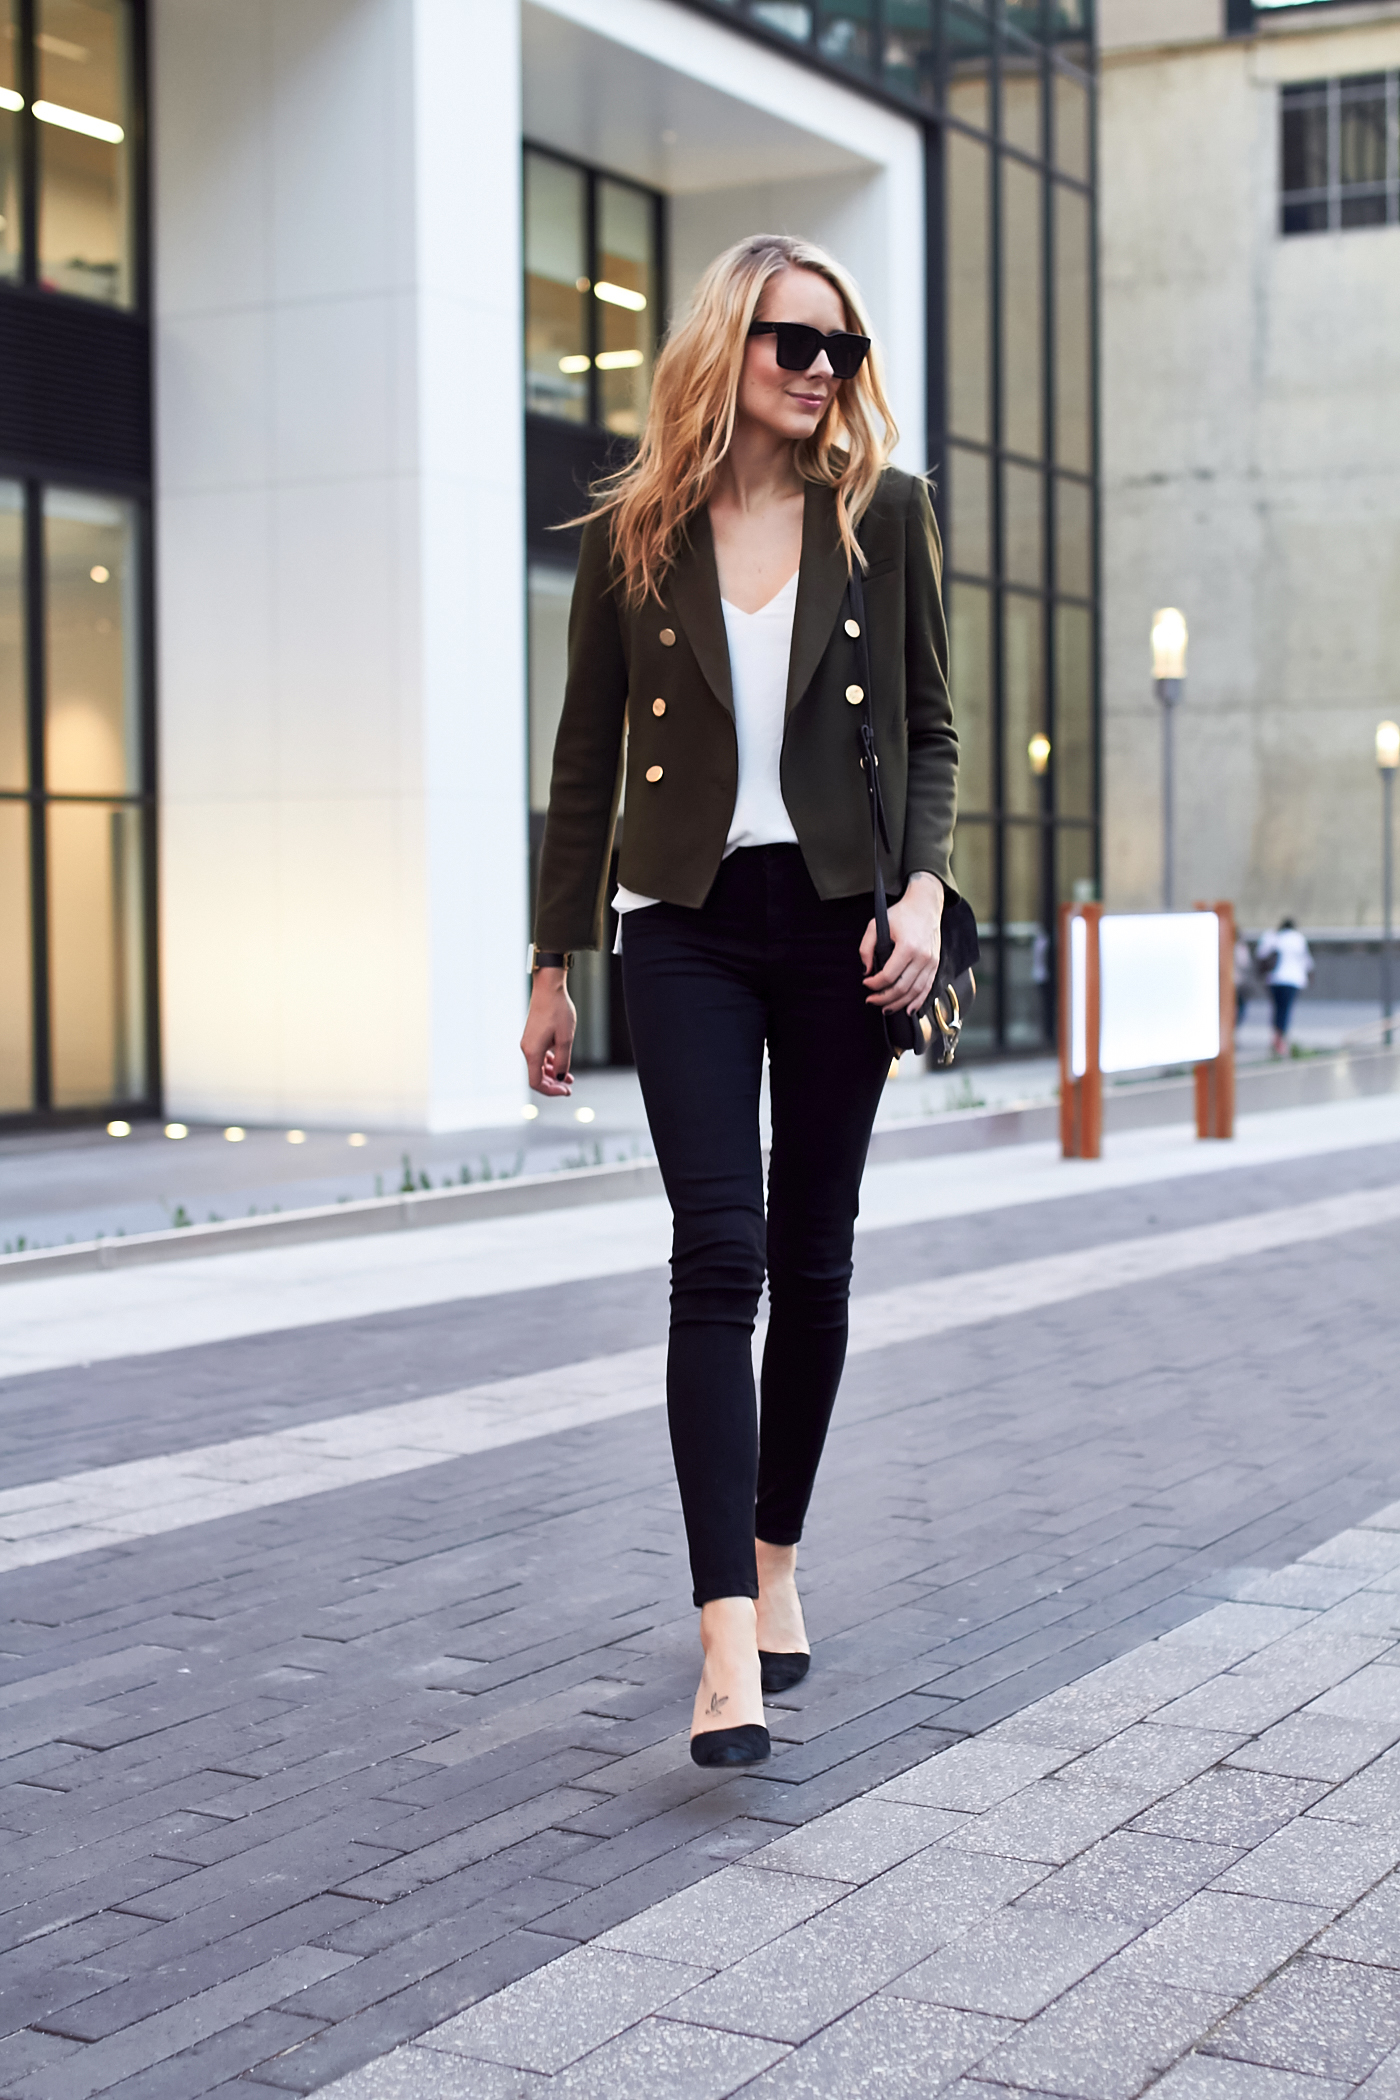 fashion-jackson-topshop-green-military-blazer-white-tank-black-skinny-jeans-black-pumps